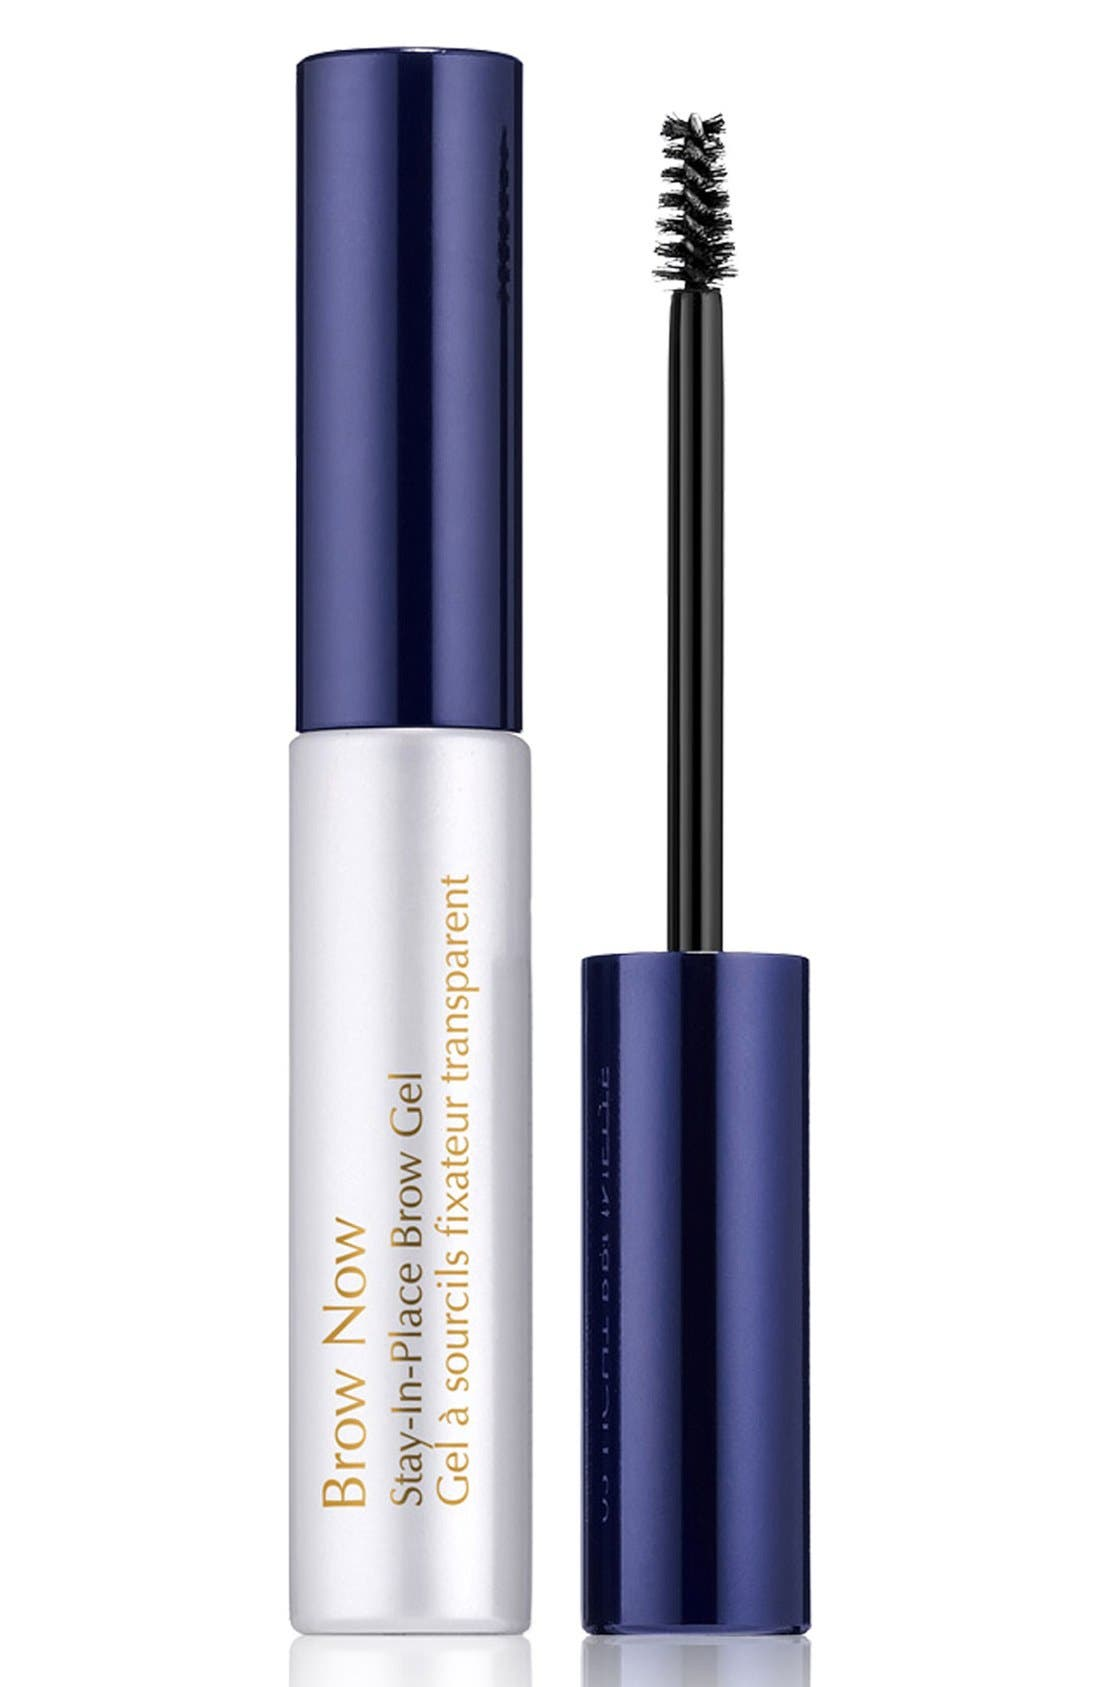 Brow Now Stay-in-Place Brow Gel,                             Main thumbnail 1, color,                             CLEAR